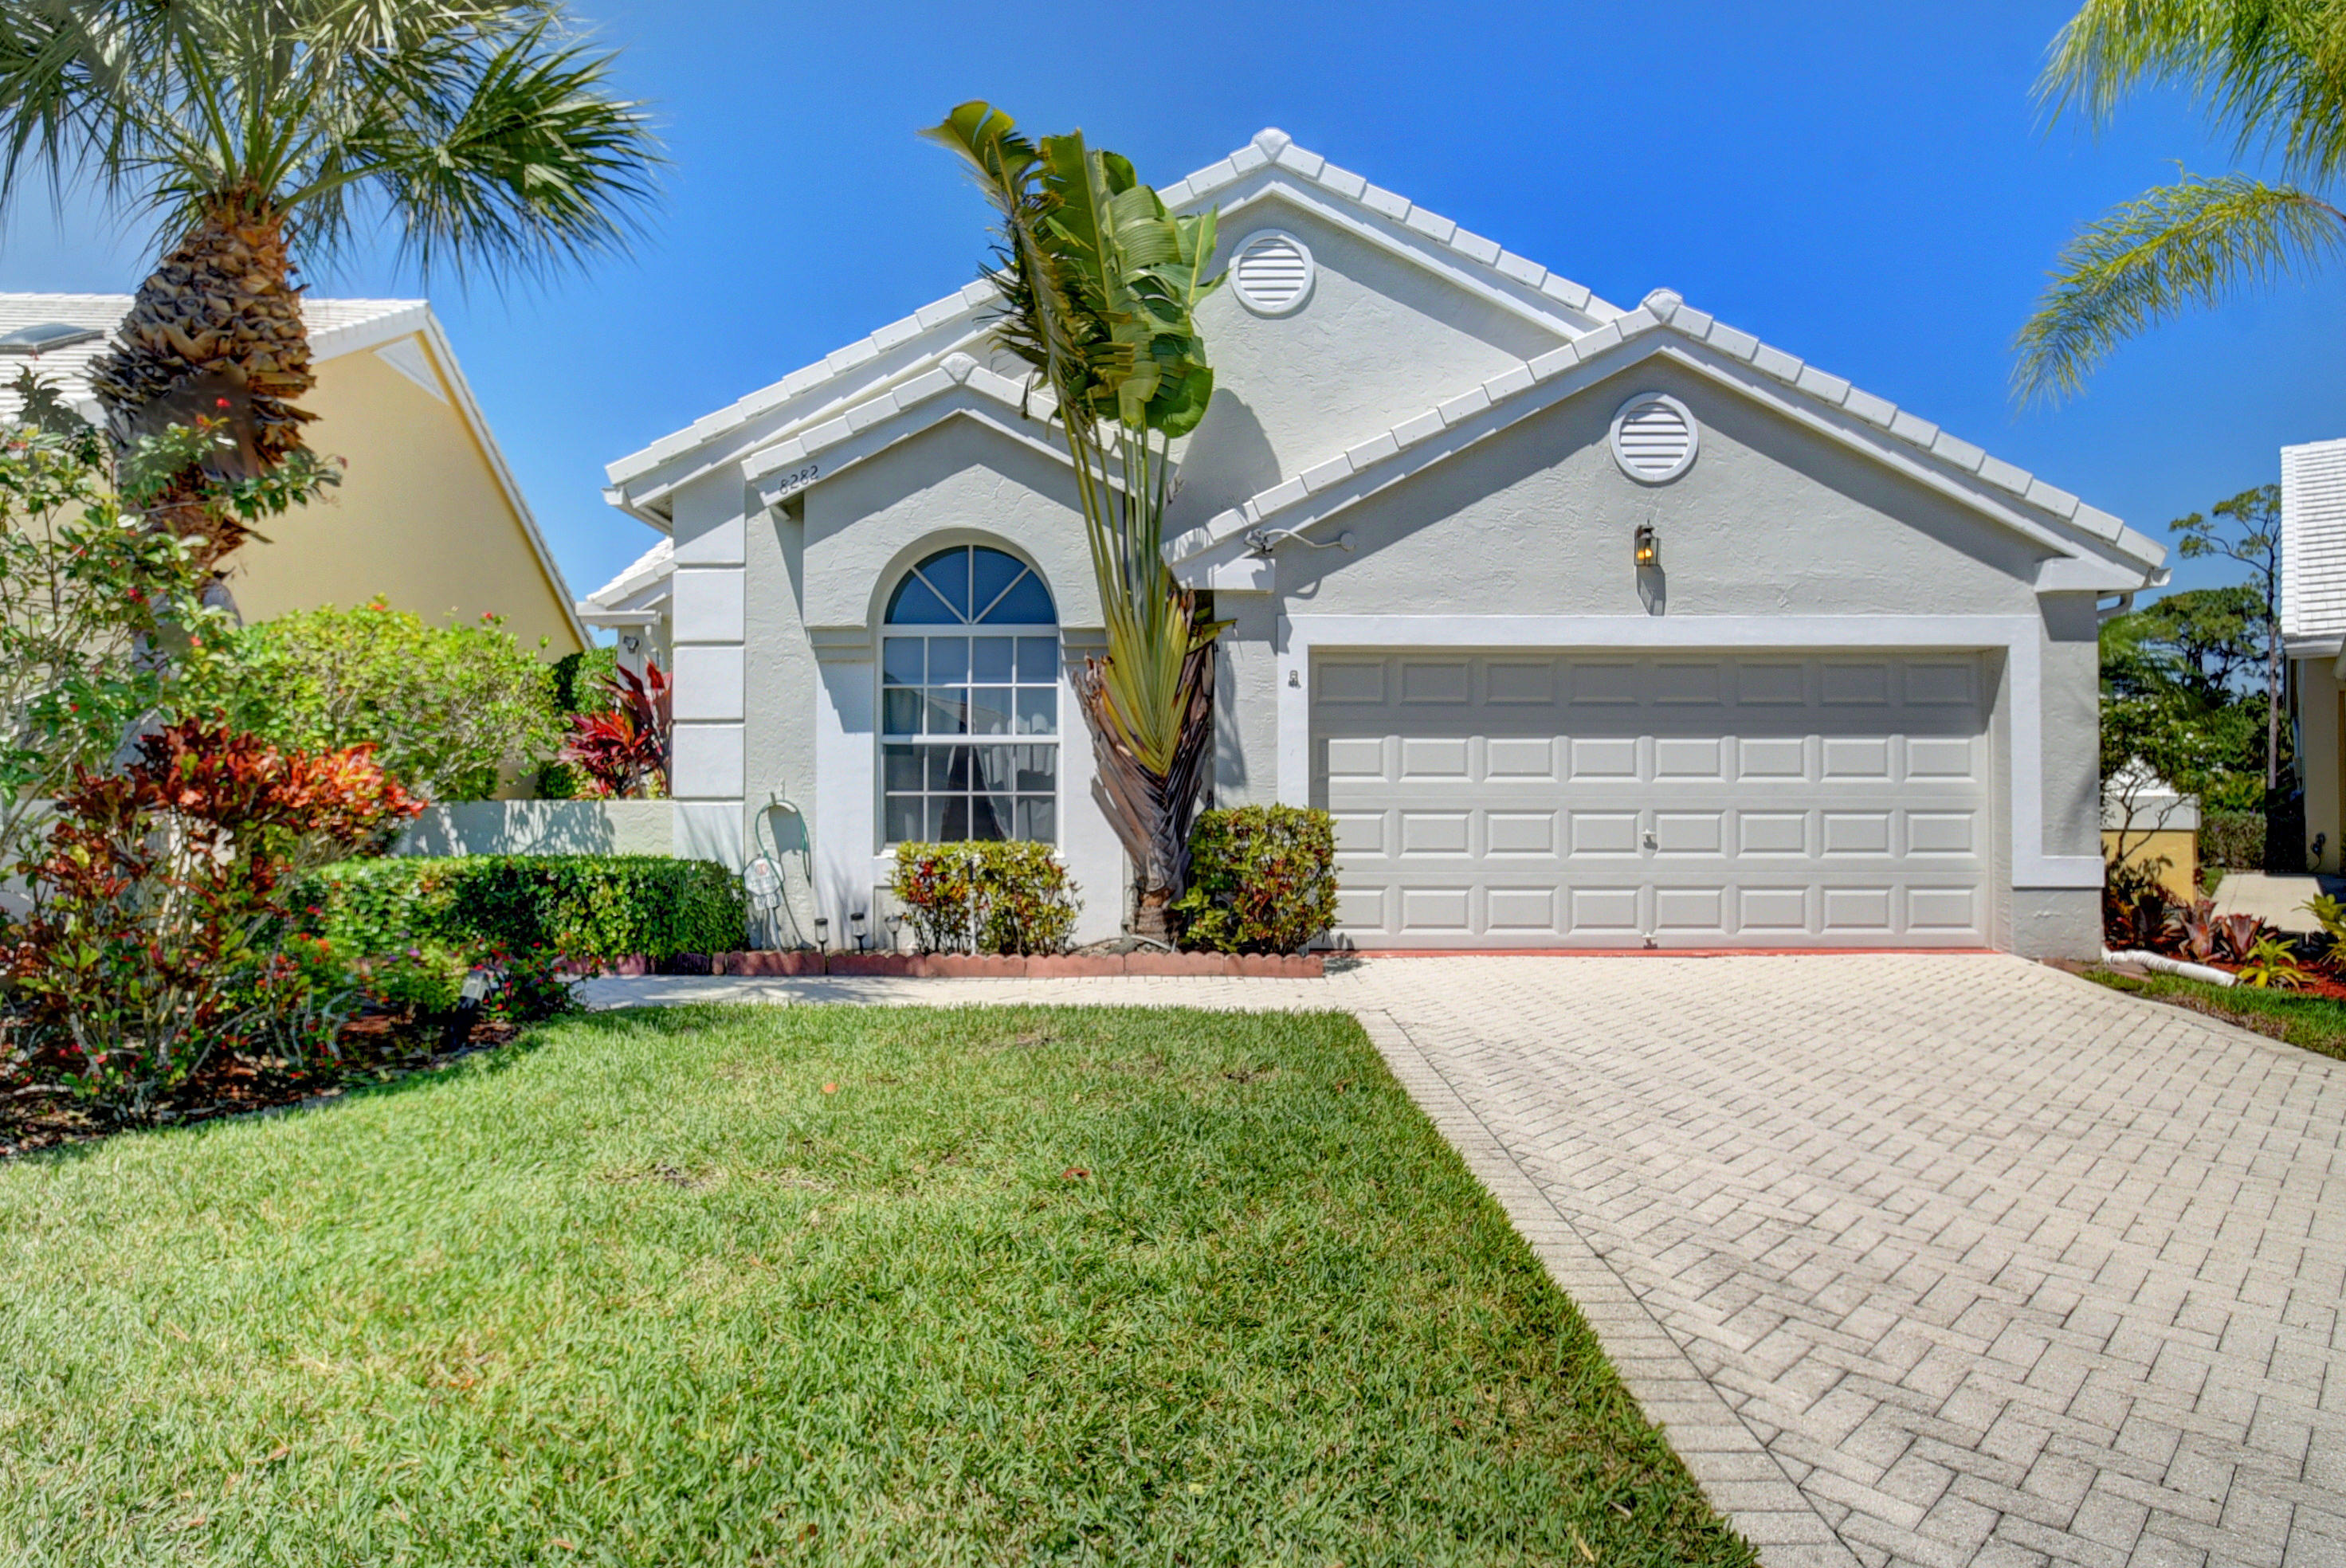 8282 Horseshoe Bay Road, Boynton Beach, Florida 33472, 3 Bedrooms Bedrooms, ,2 BathroomsBathrooms,A,Single family,Horseshoe Bay,RX-10514079